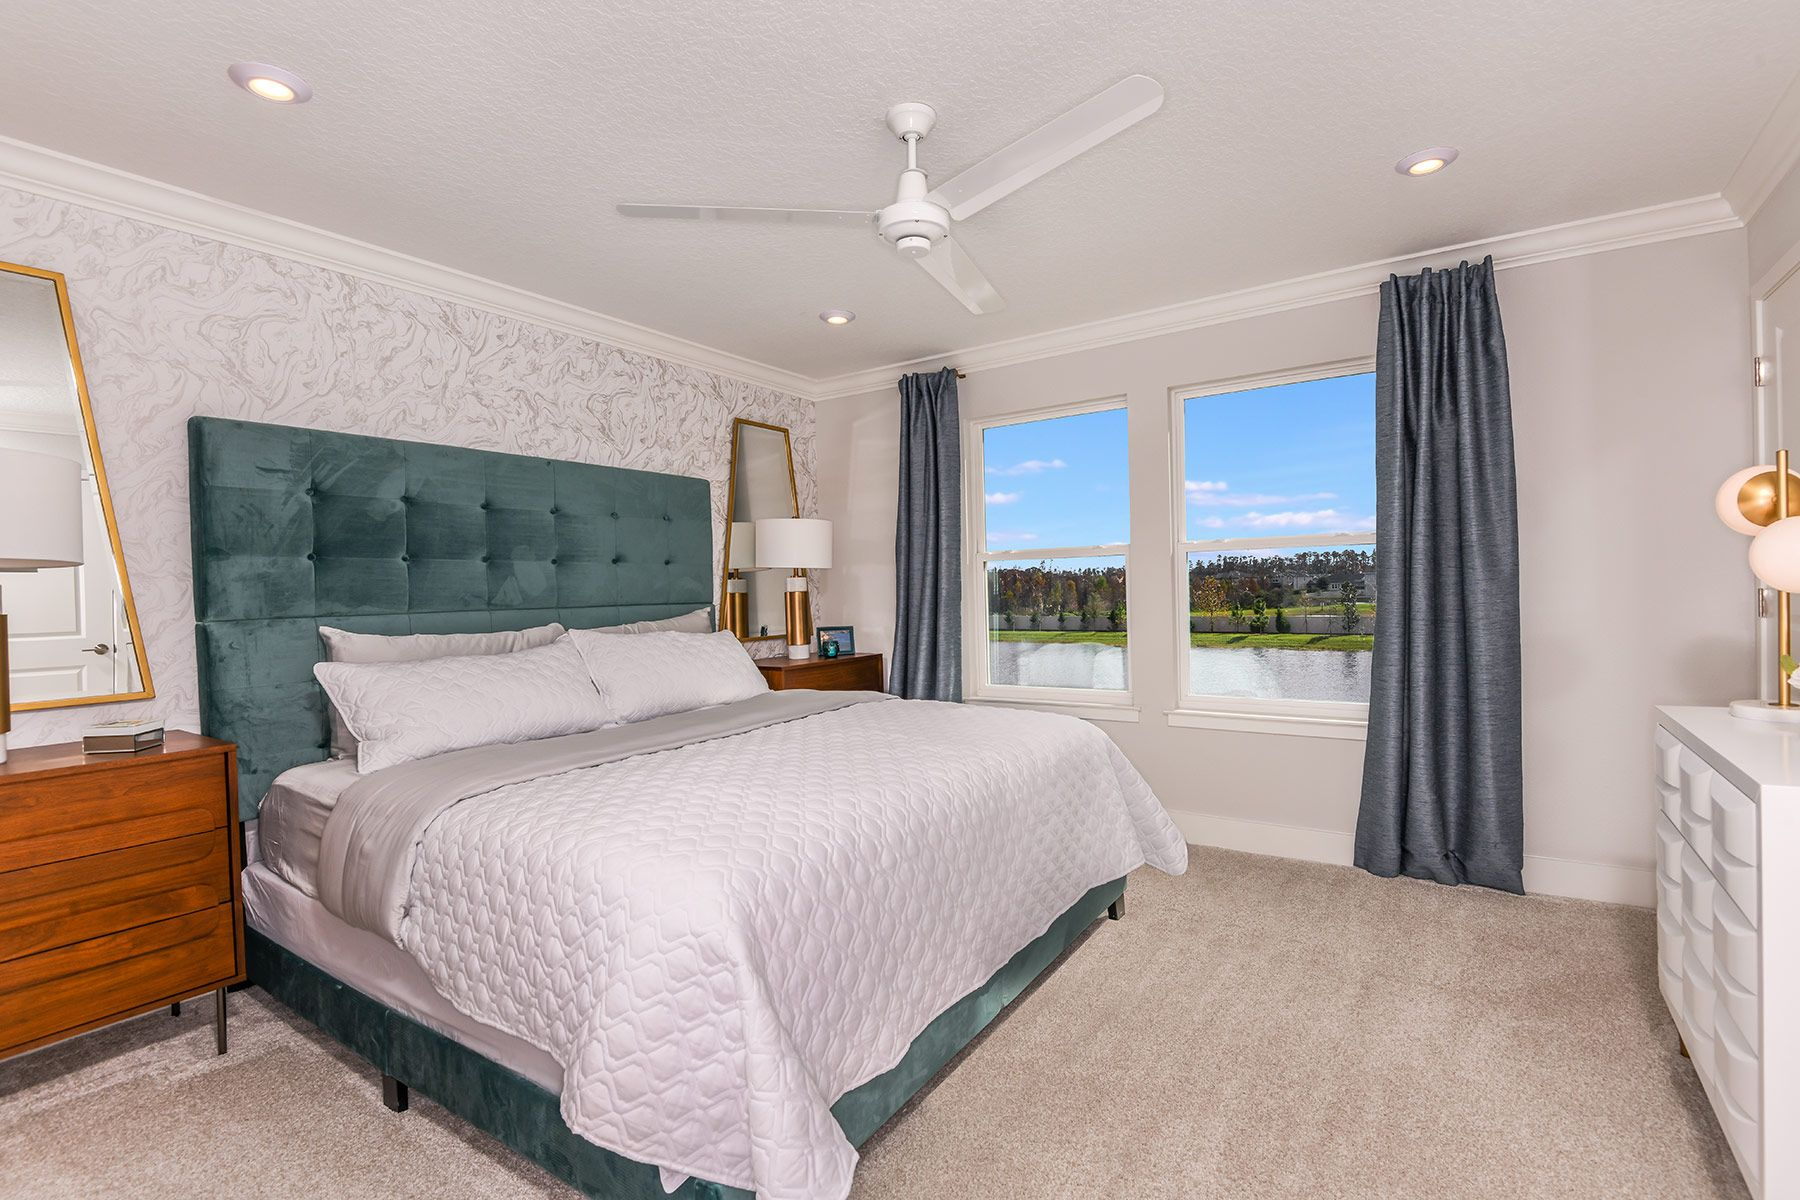 Bedroom featured in the Marianna By Mattamy Homes in Tampa-St. Petersburg, FL